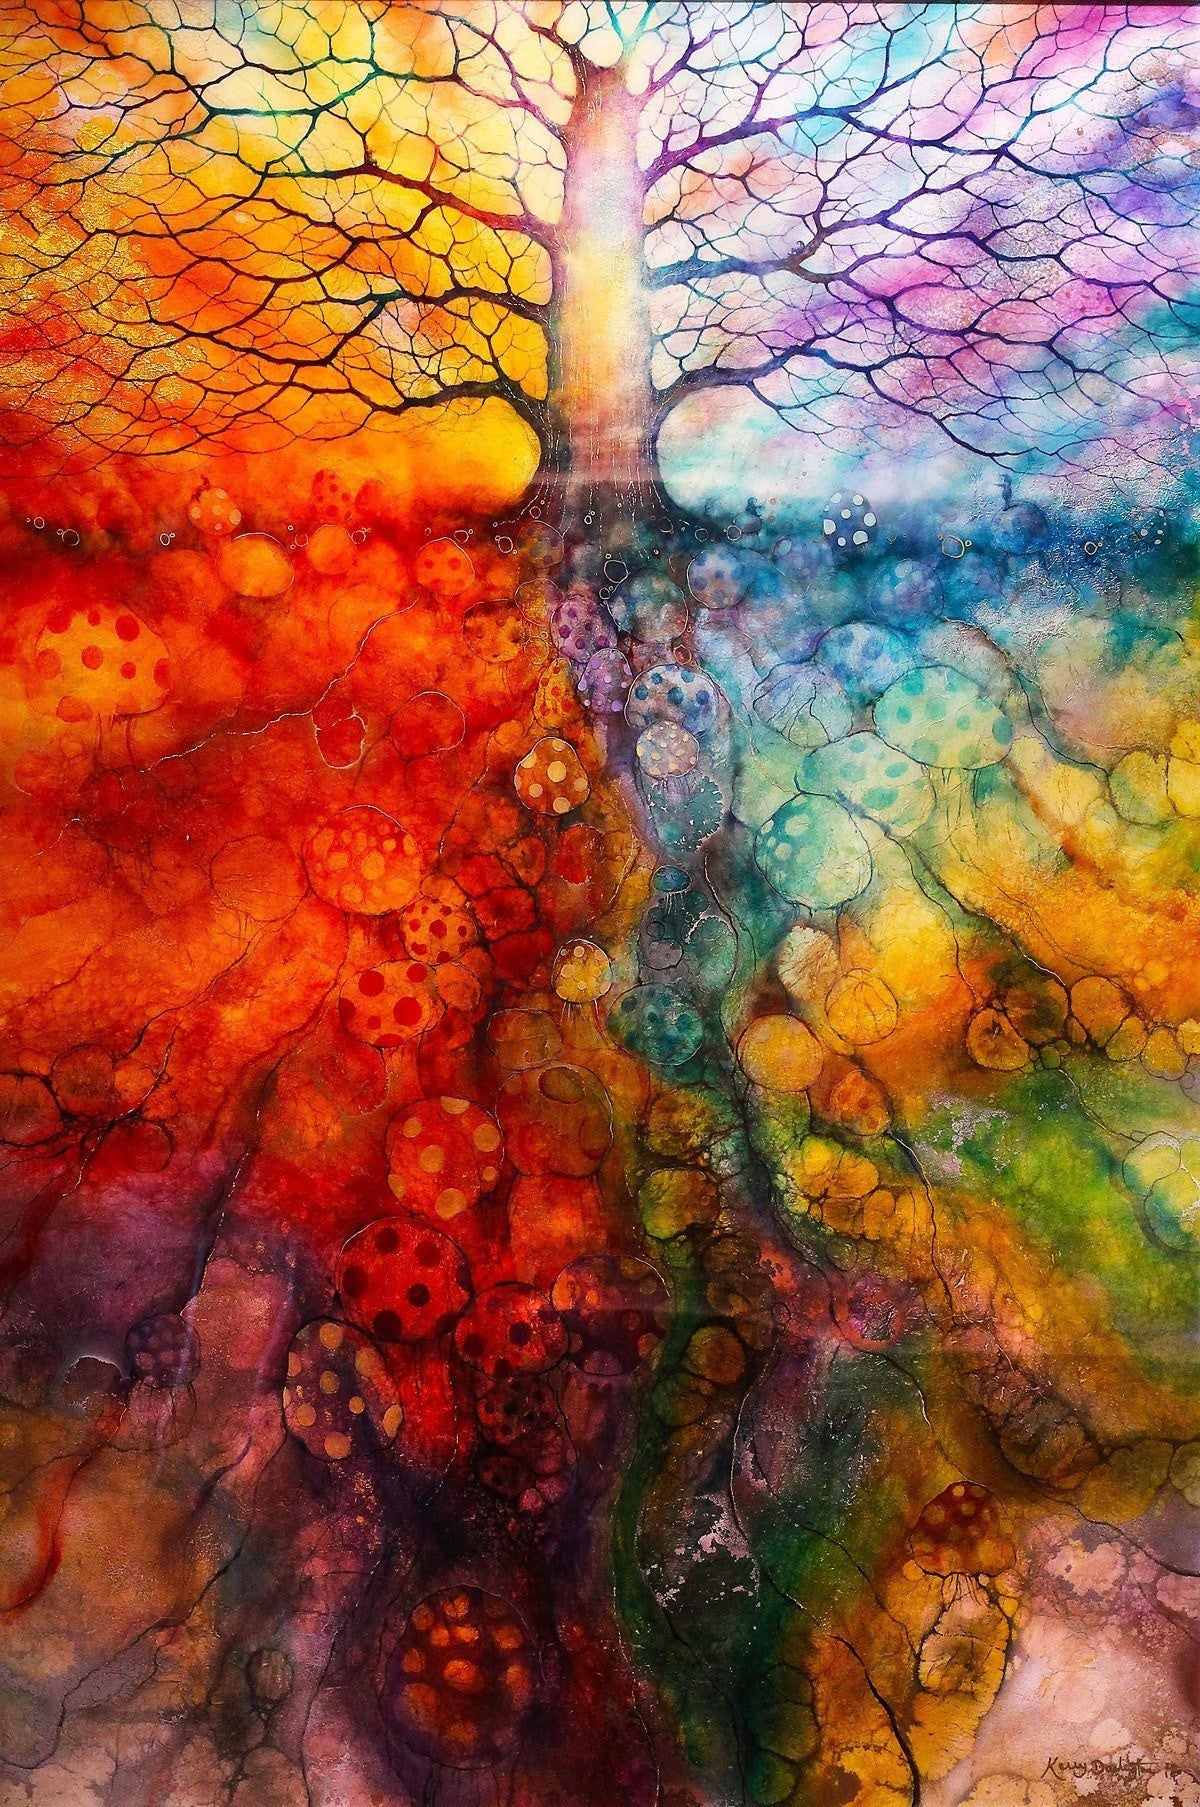 Wiccan Tree - ORIGINAL - SOLD Kerry Darlington